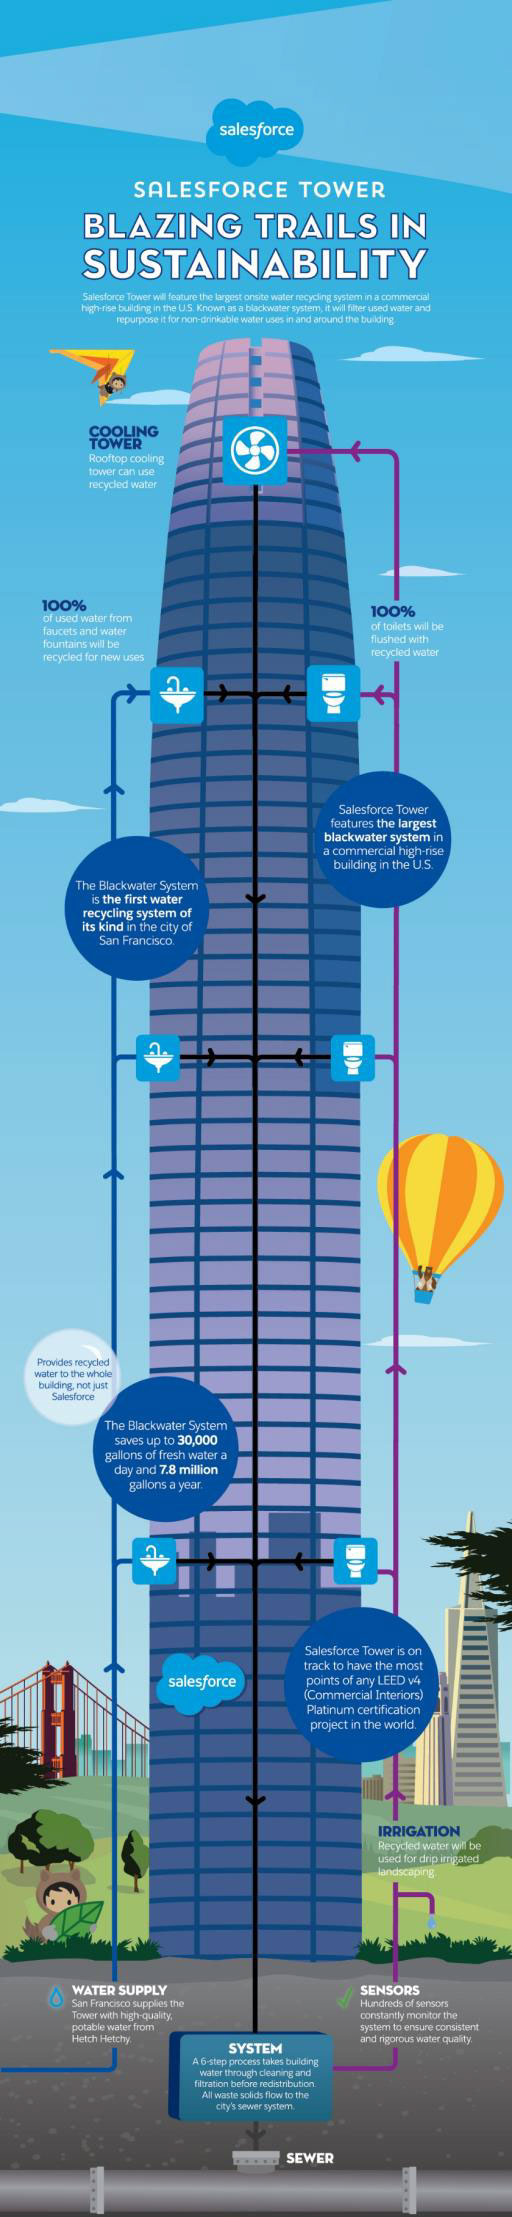 Salesforce tower feature illustration